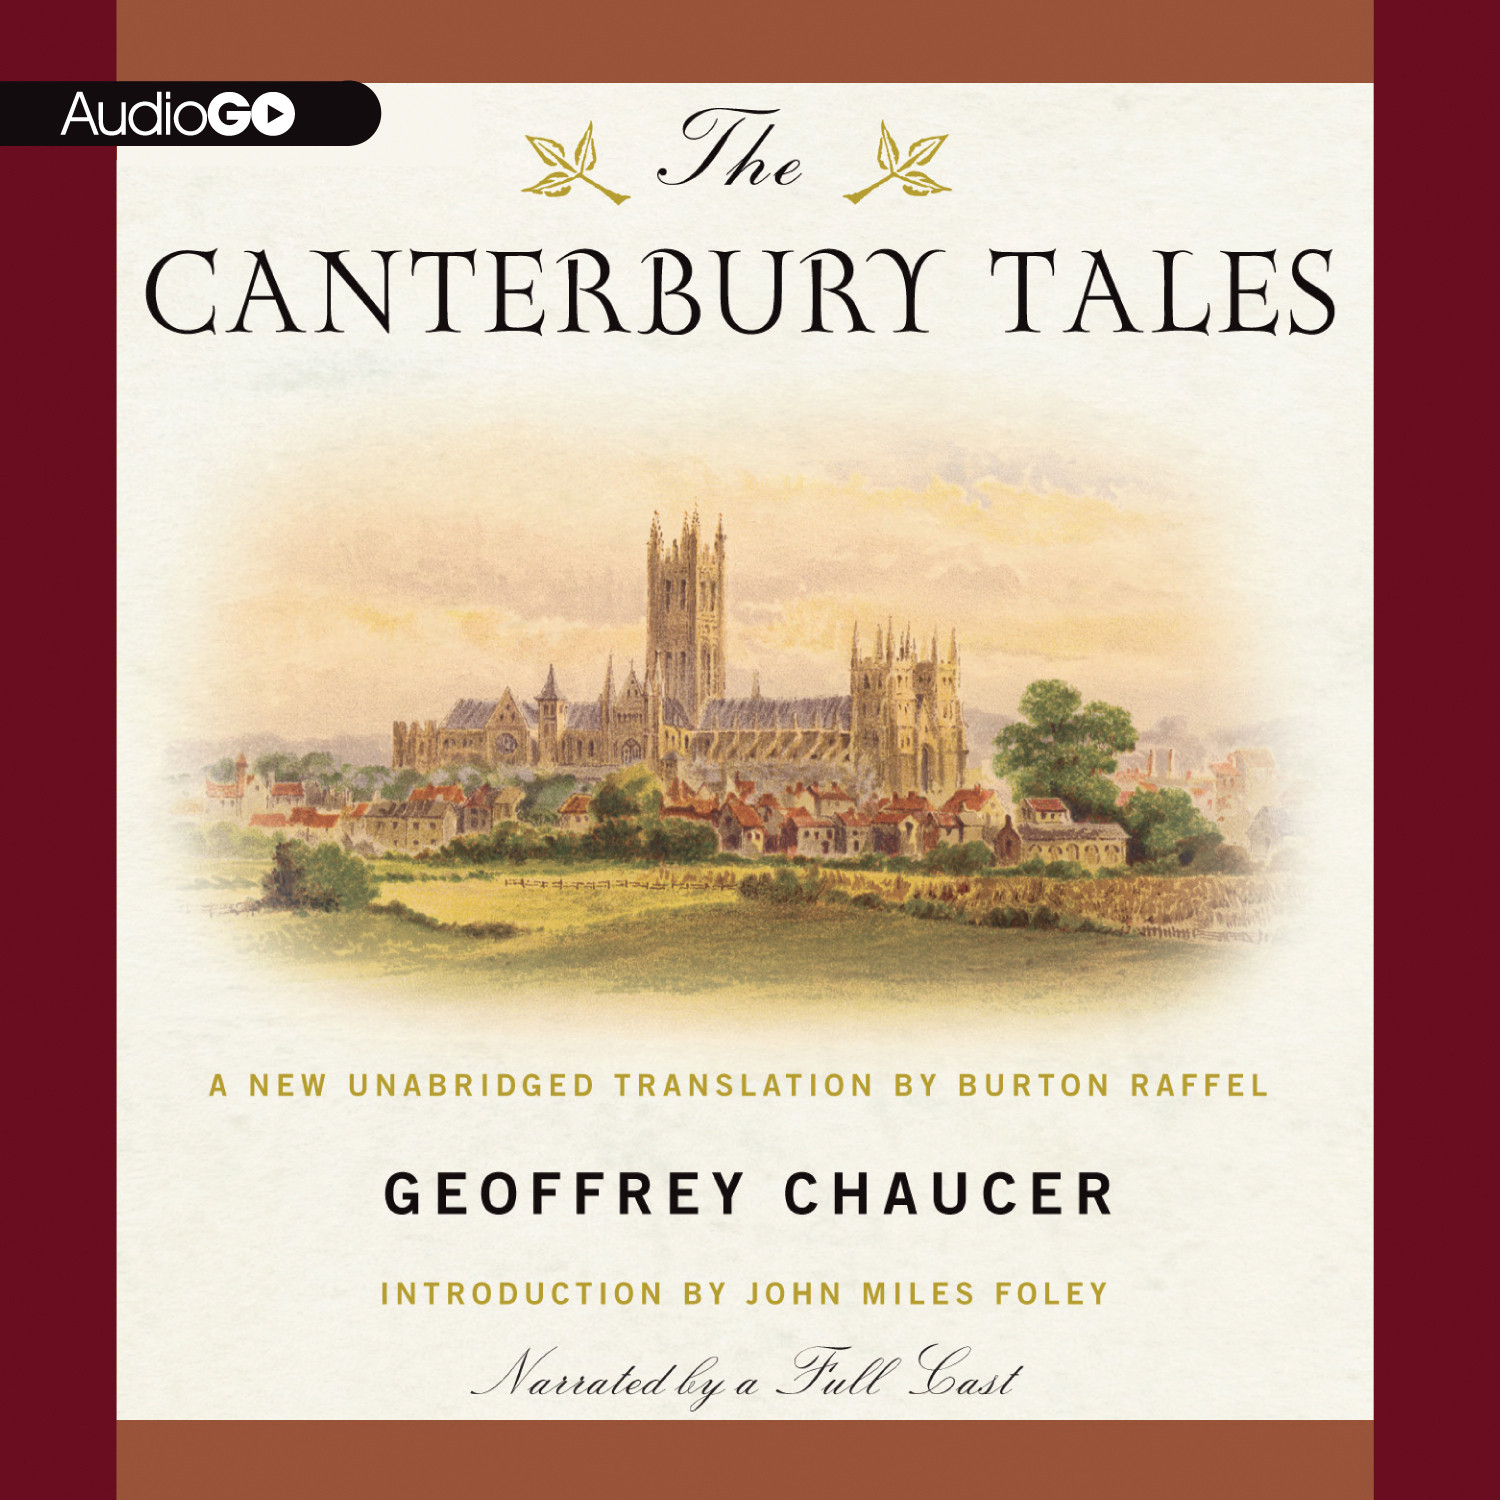 resume now profesional resume for job resume now resume now reviews trustpilot hear the canterbury tales audiobook by geoffrey chaucer by